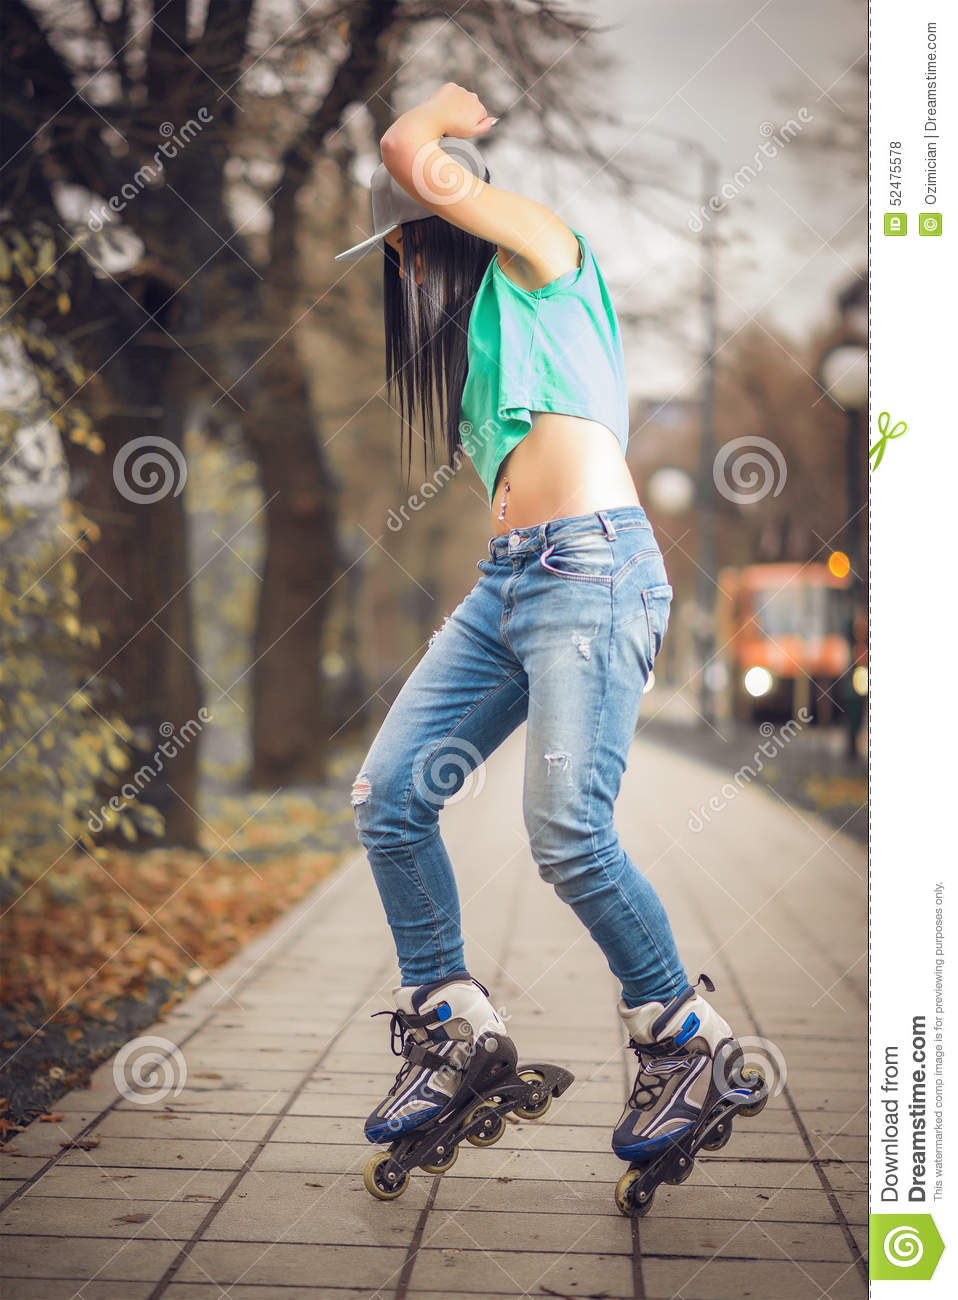 Woman Is Having A Fun In Park On Roller Skates Stock Photo